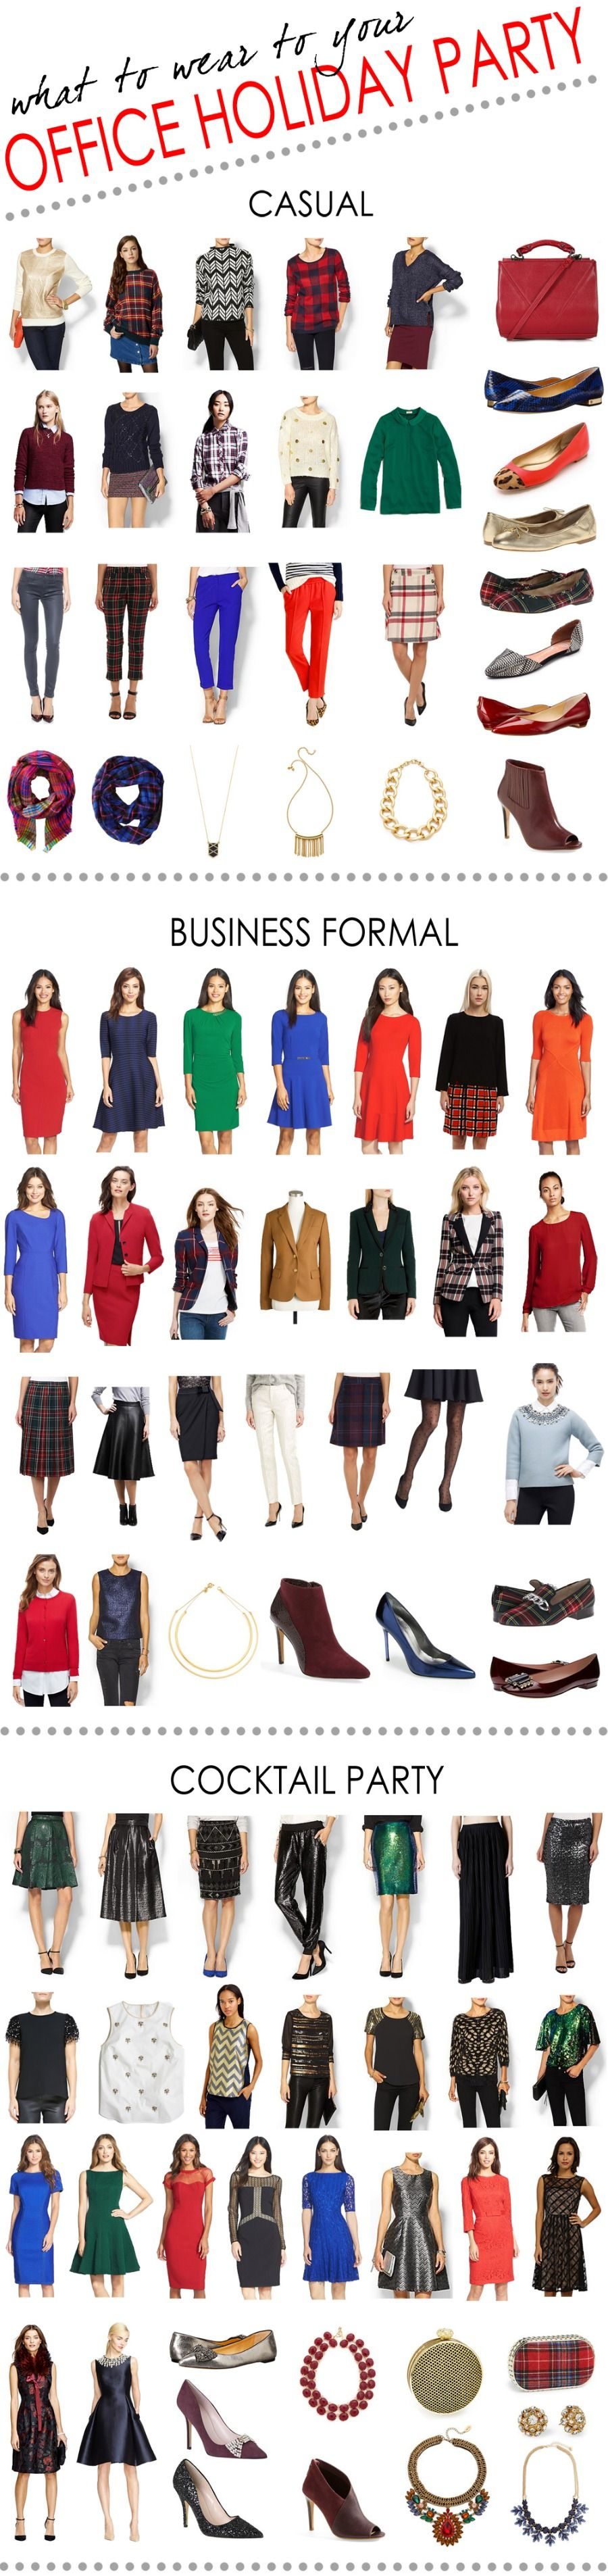 the ultimate guide to office holiday party attire all products the ultimate guide to office holiday party attire all products are linked to